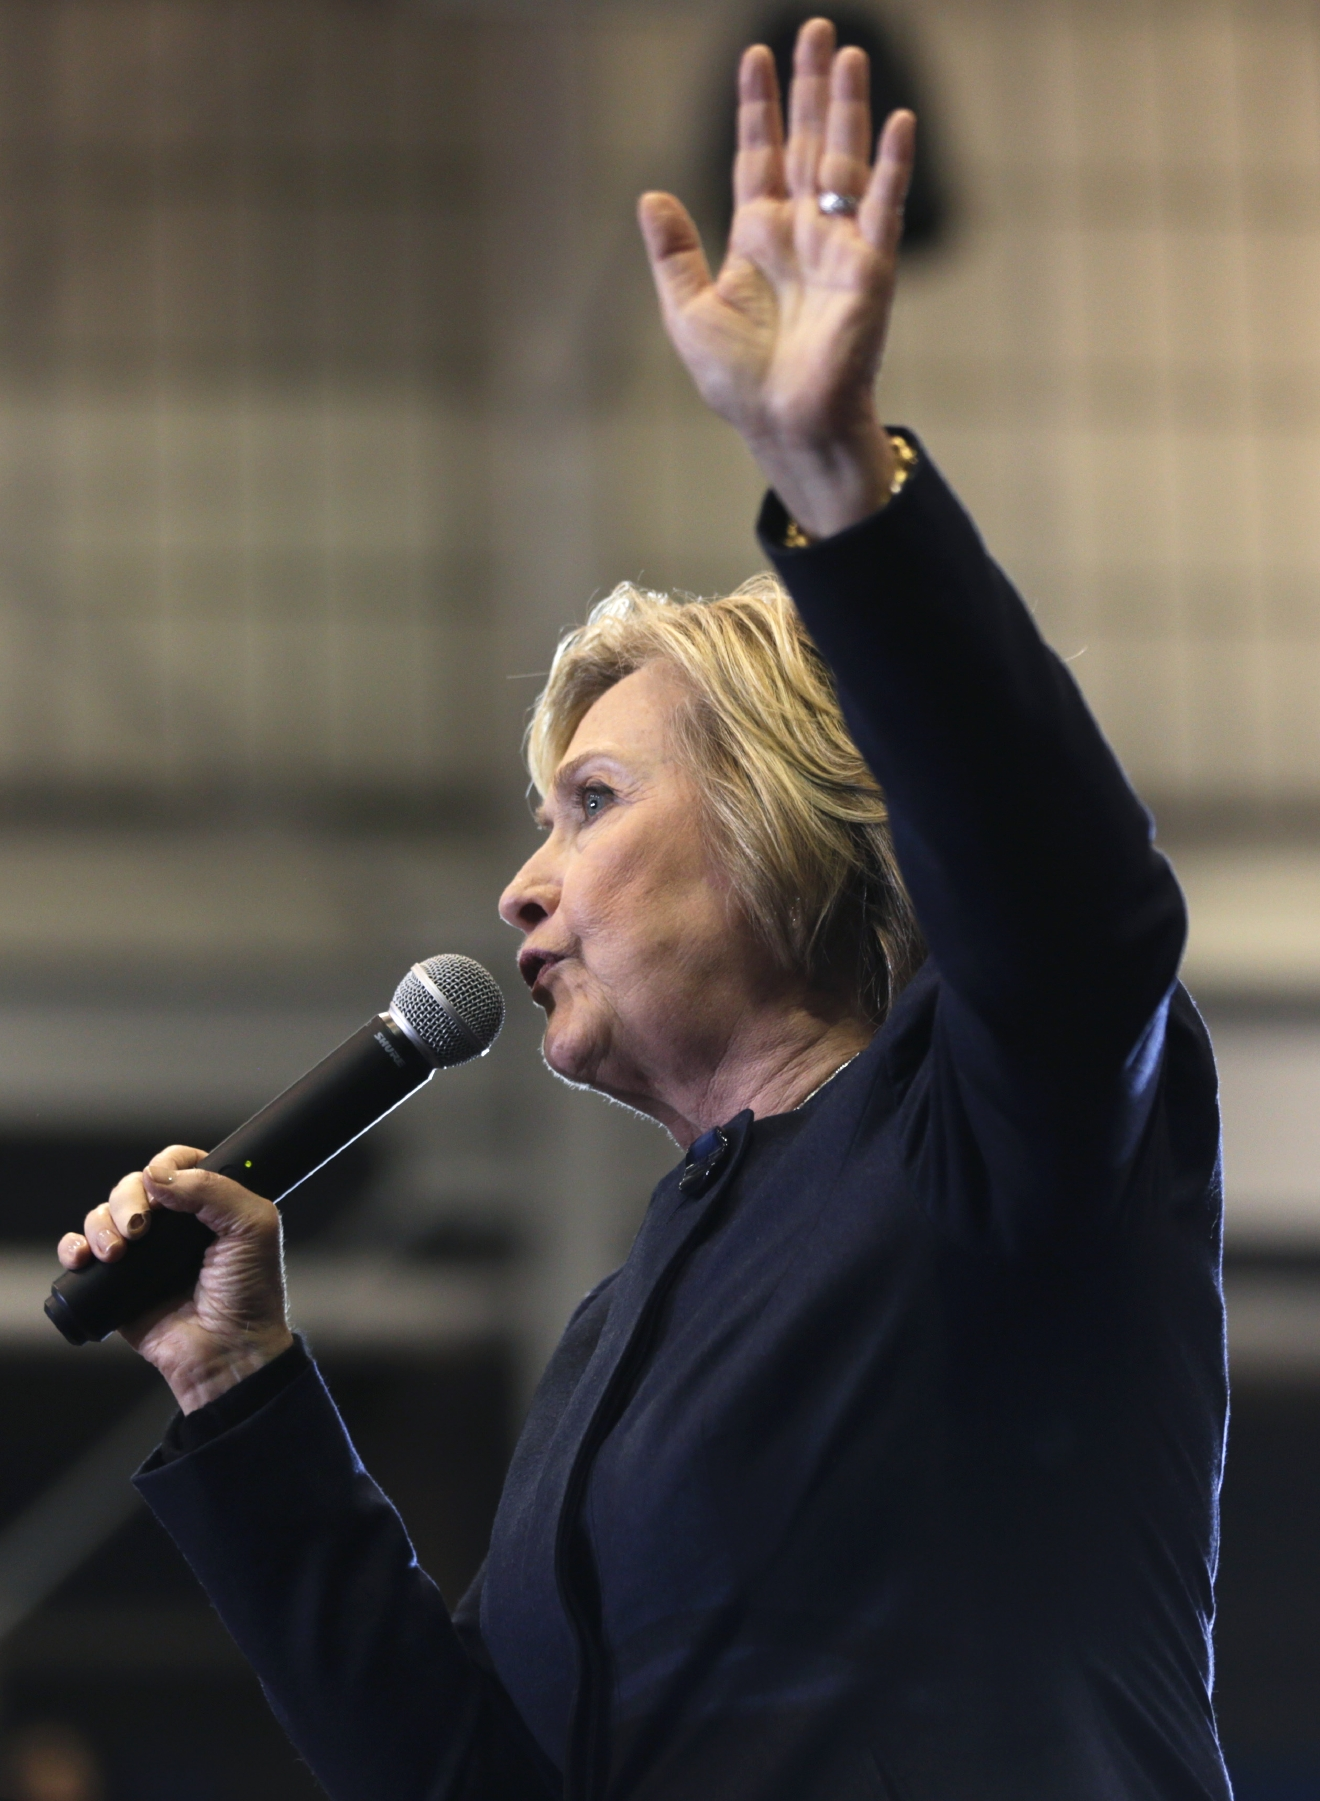 Democratic presidential candidate Hillary Clinton speaks during a rally at Cohoes High School on Monday, April 4, 2016, in Cohoes, N.Y. (AP Photo/Mike Groll)